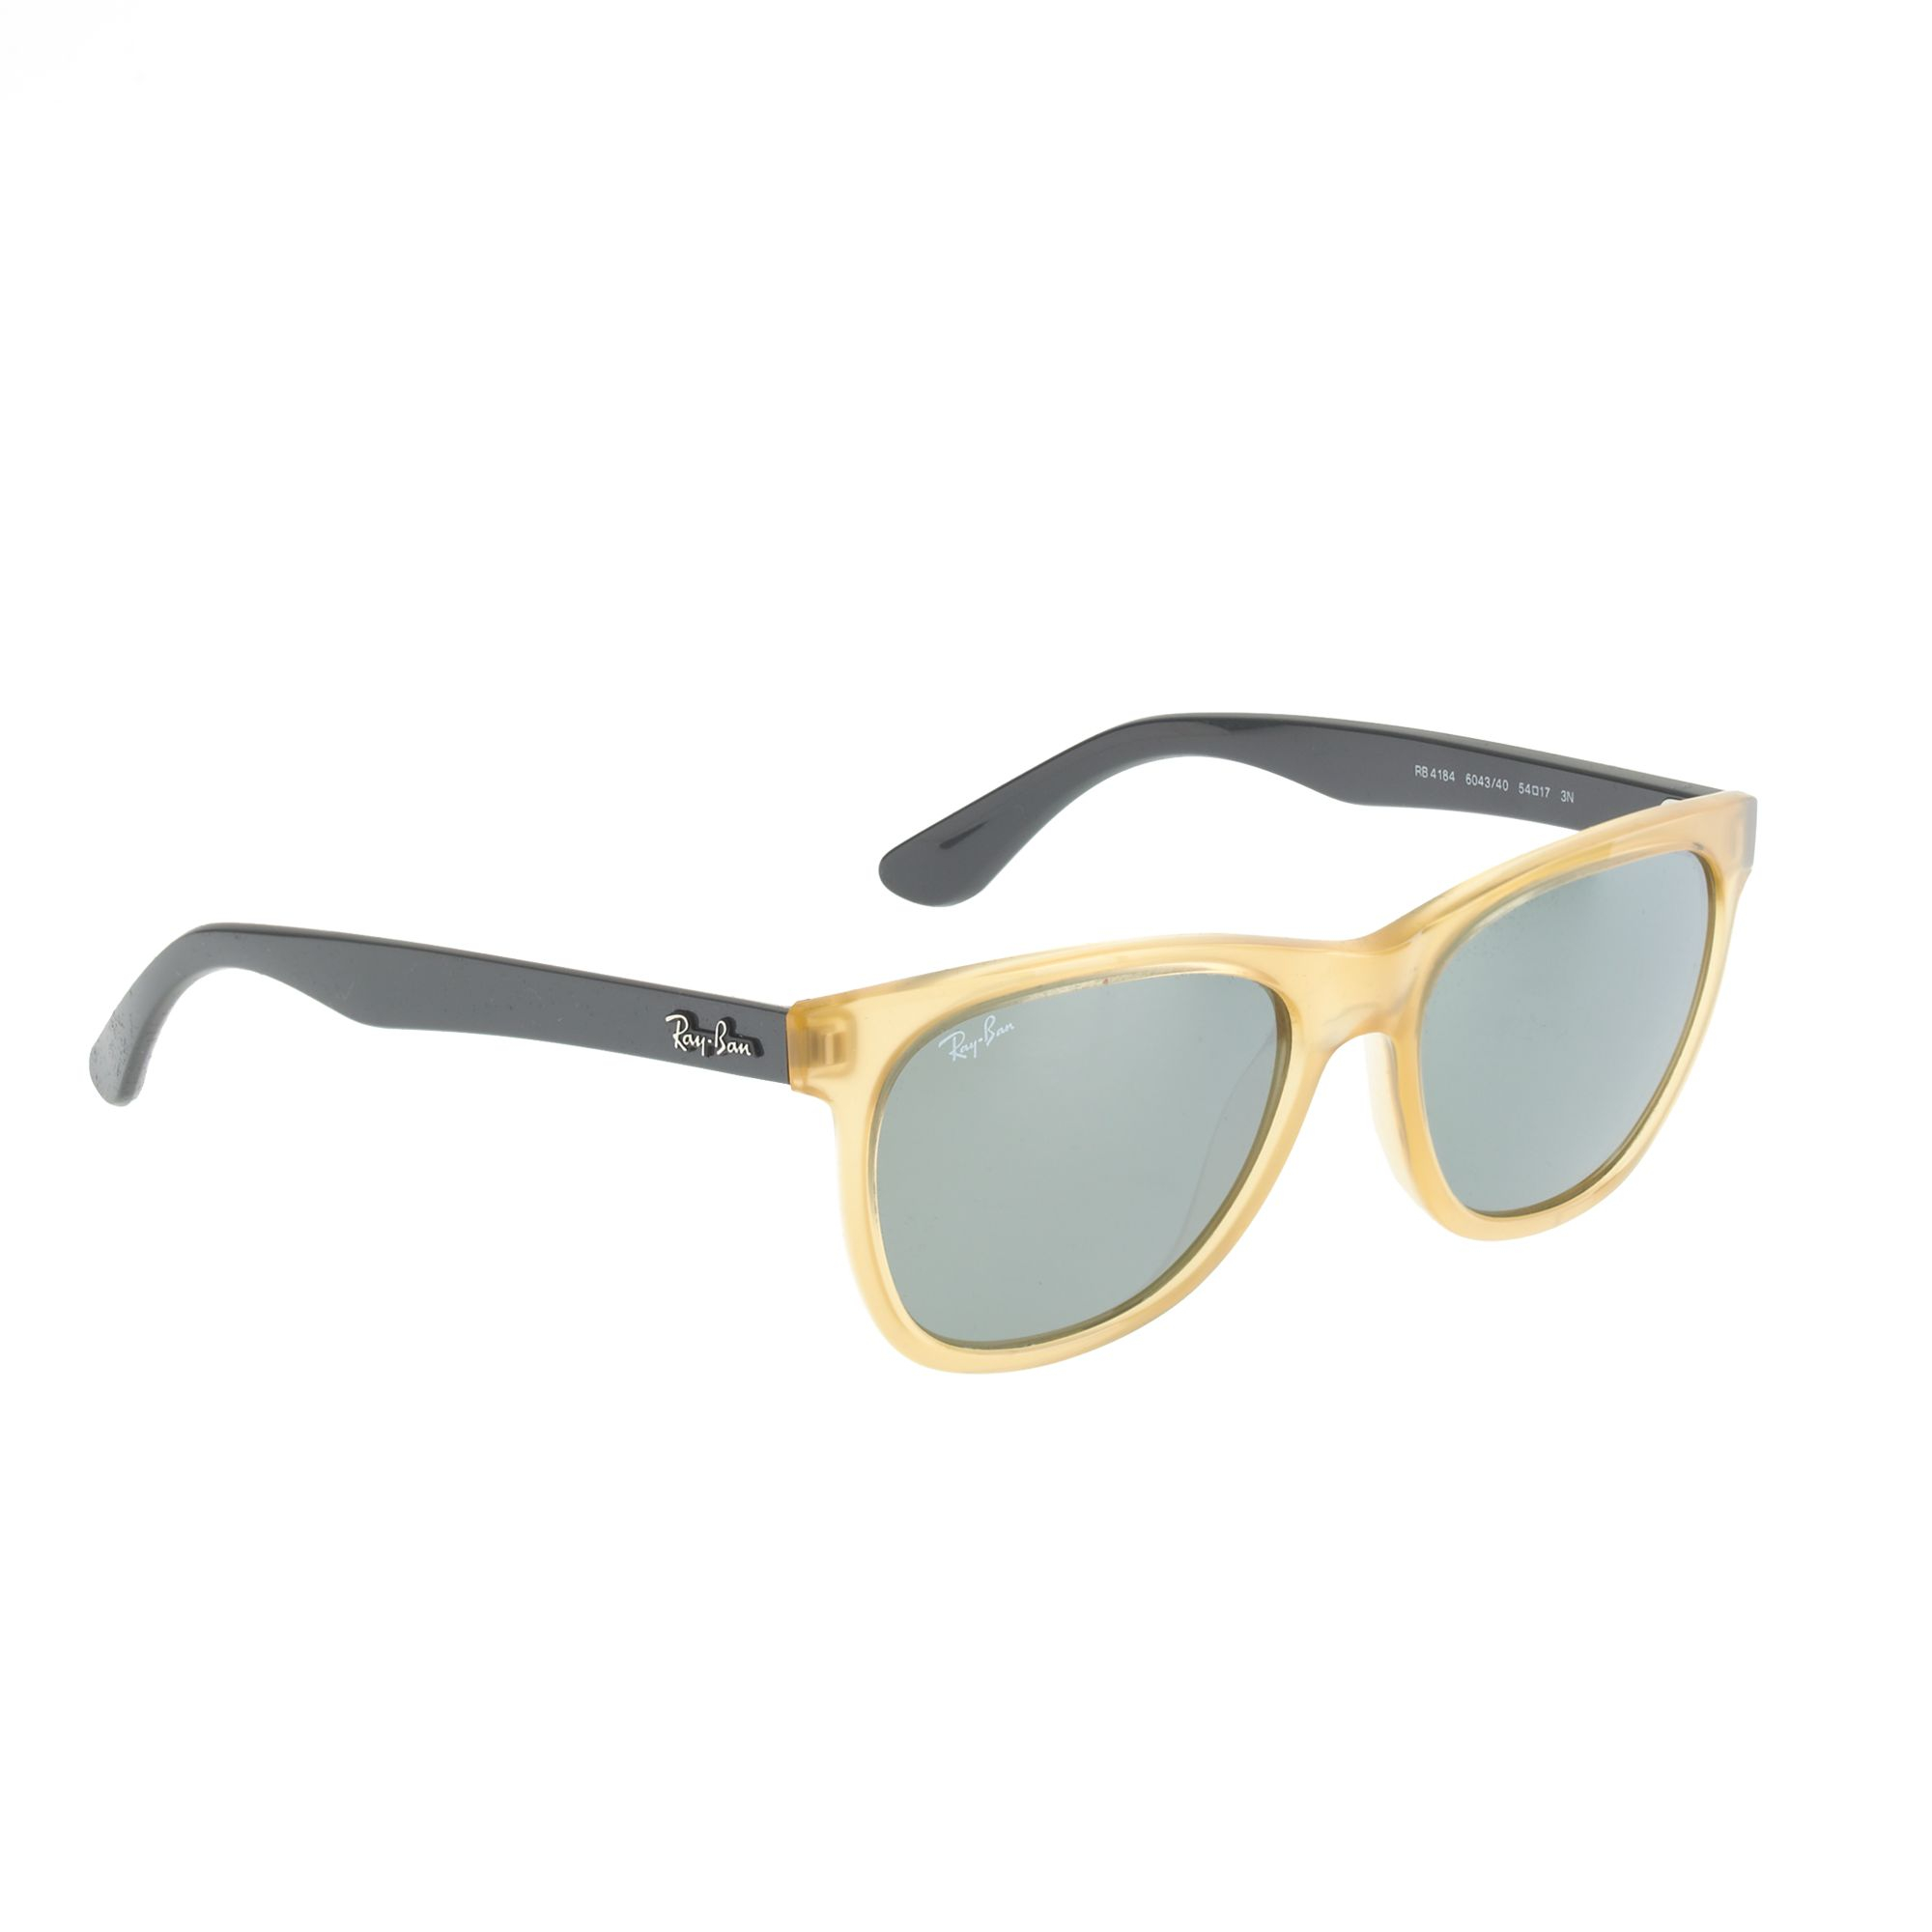 ray ban wayfarer sunglasses with mirror lenses in yellow mirror lens lyst. Black Bedroom Furniture Sets. Home Design Ideas